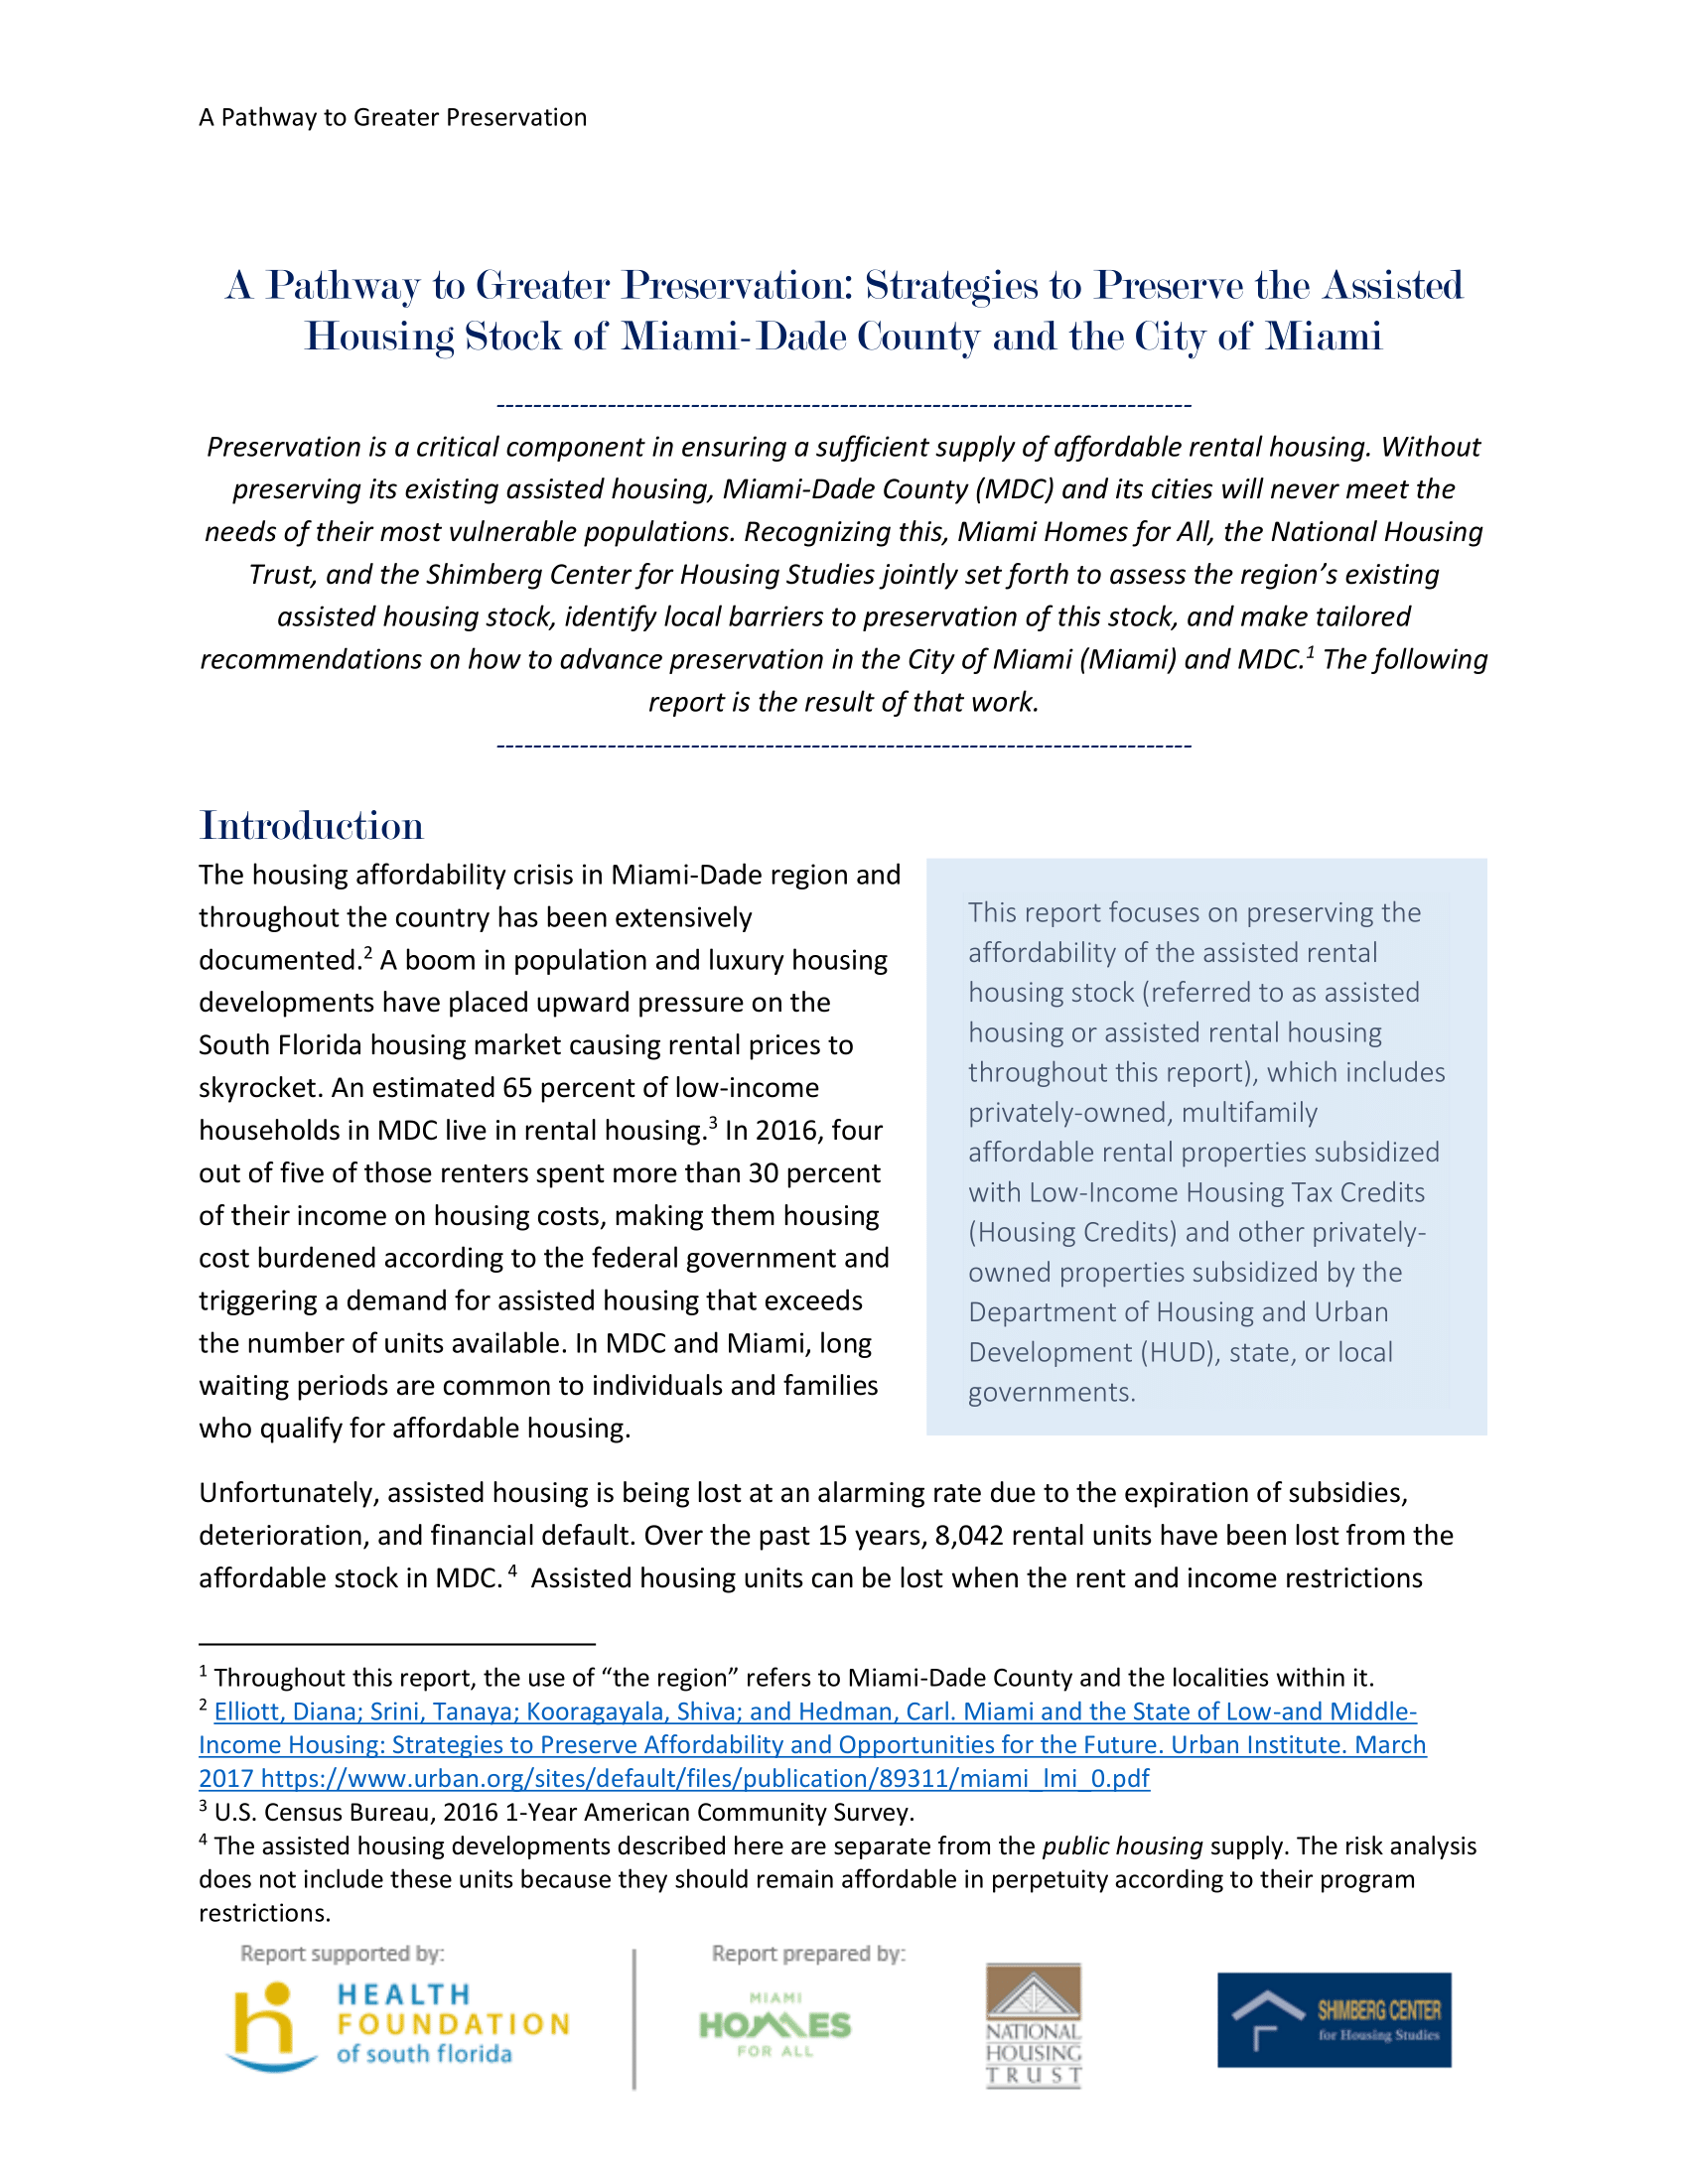 A Pathway to Greater Preservation - February 2018-09.png